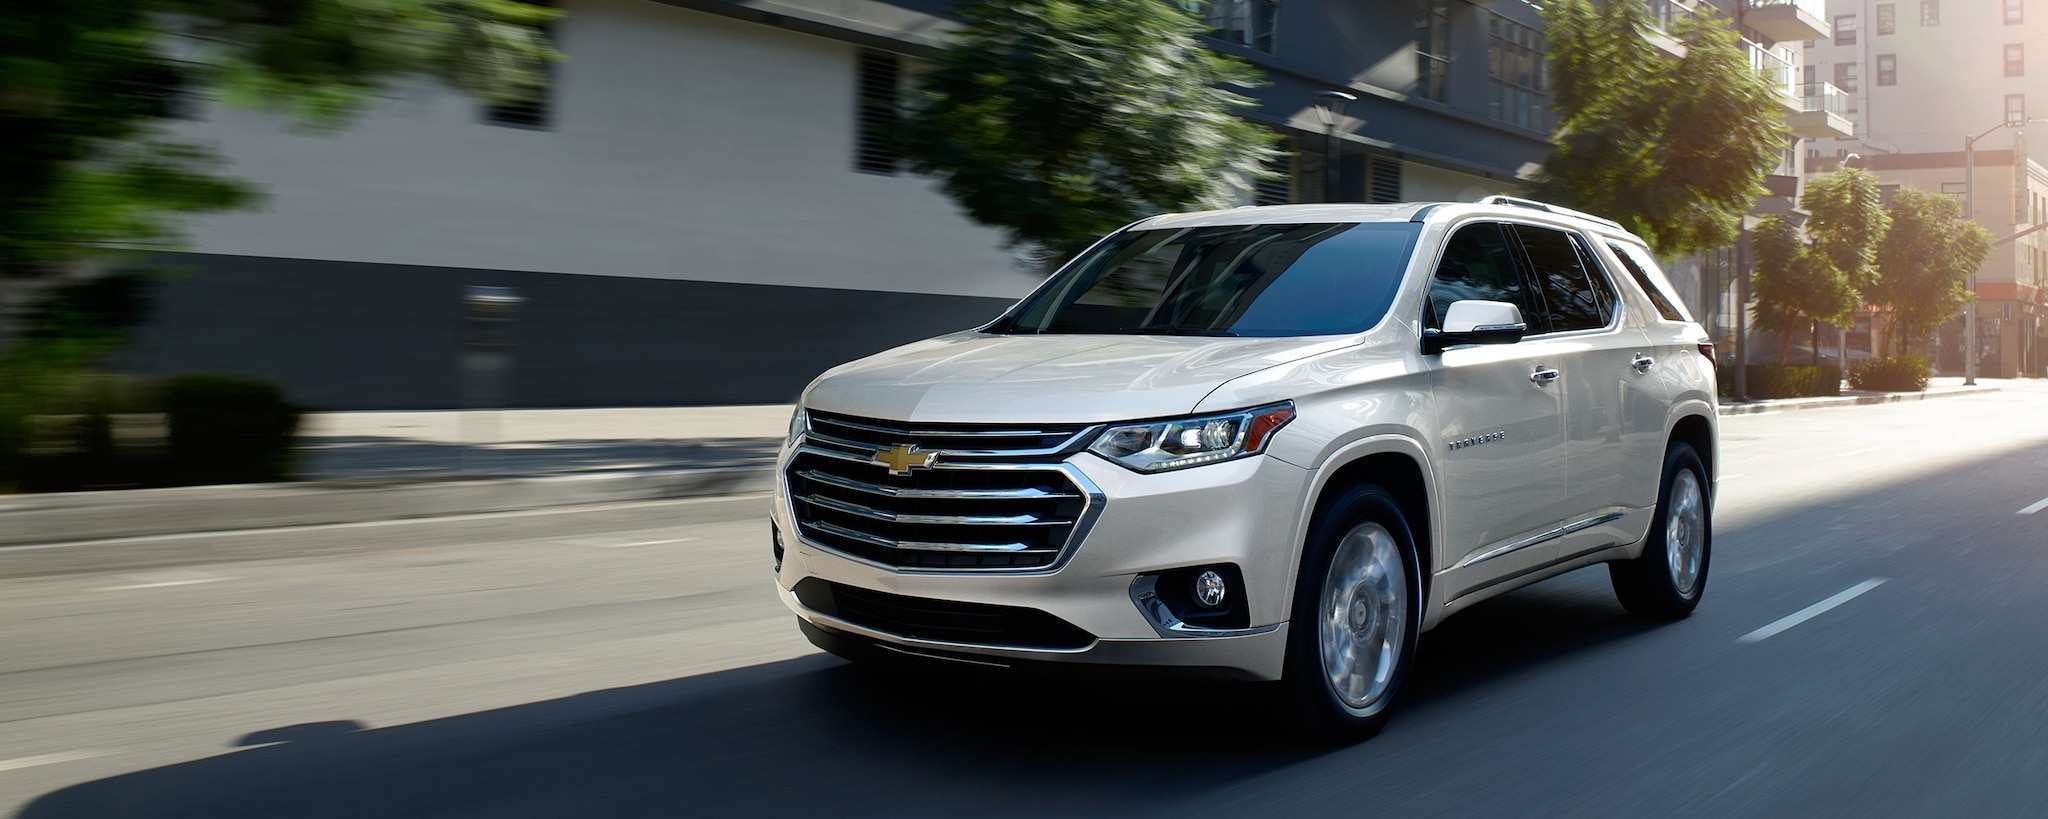 42 Best 2019 Chevrolet Pictures Overview